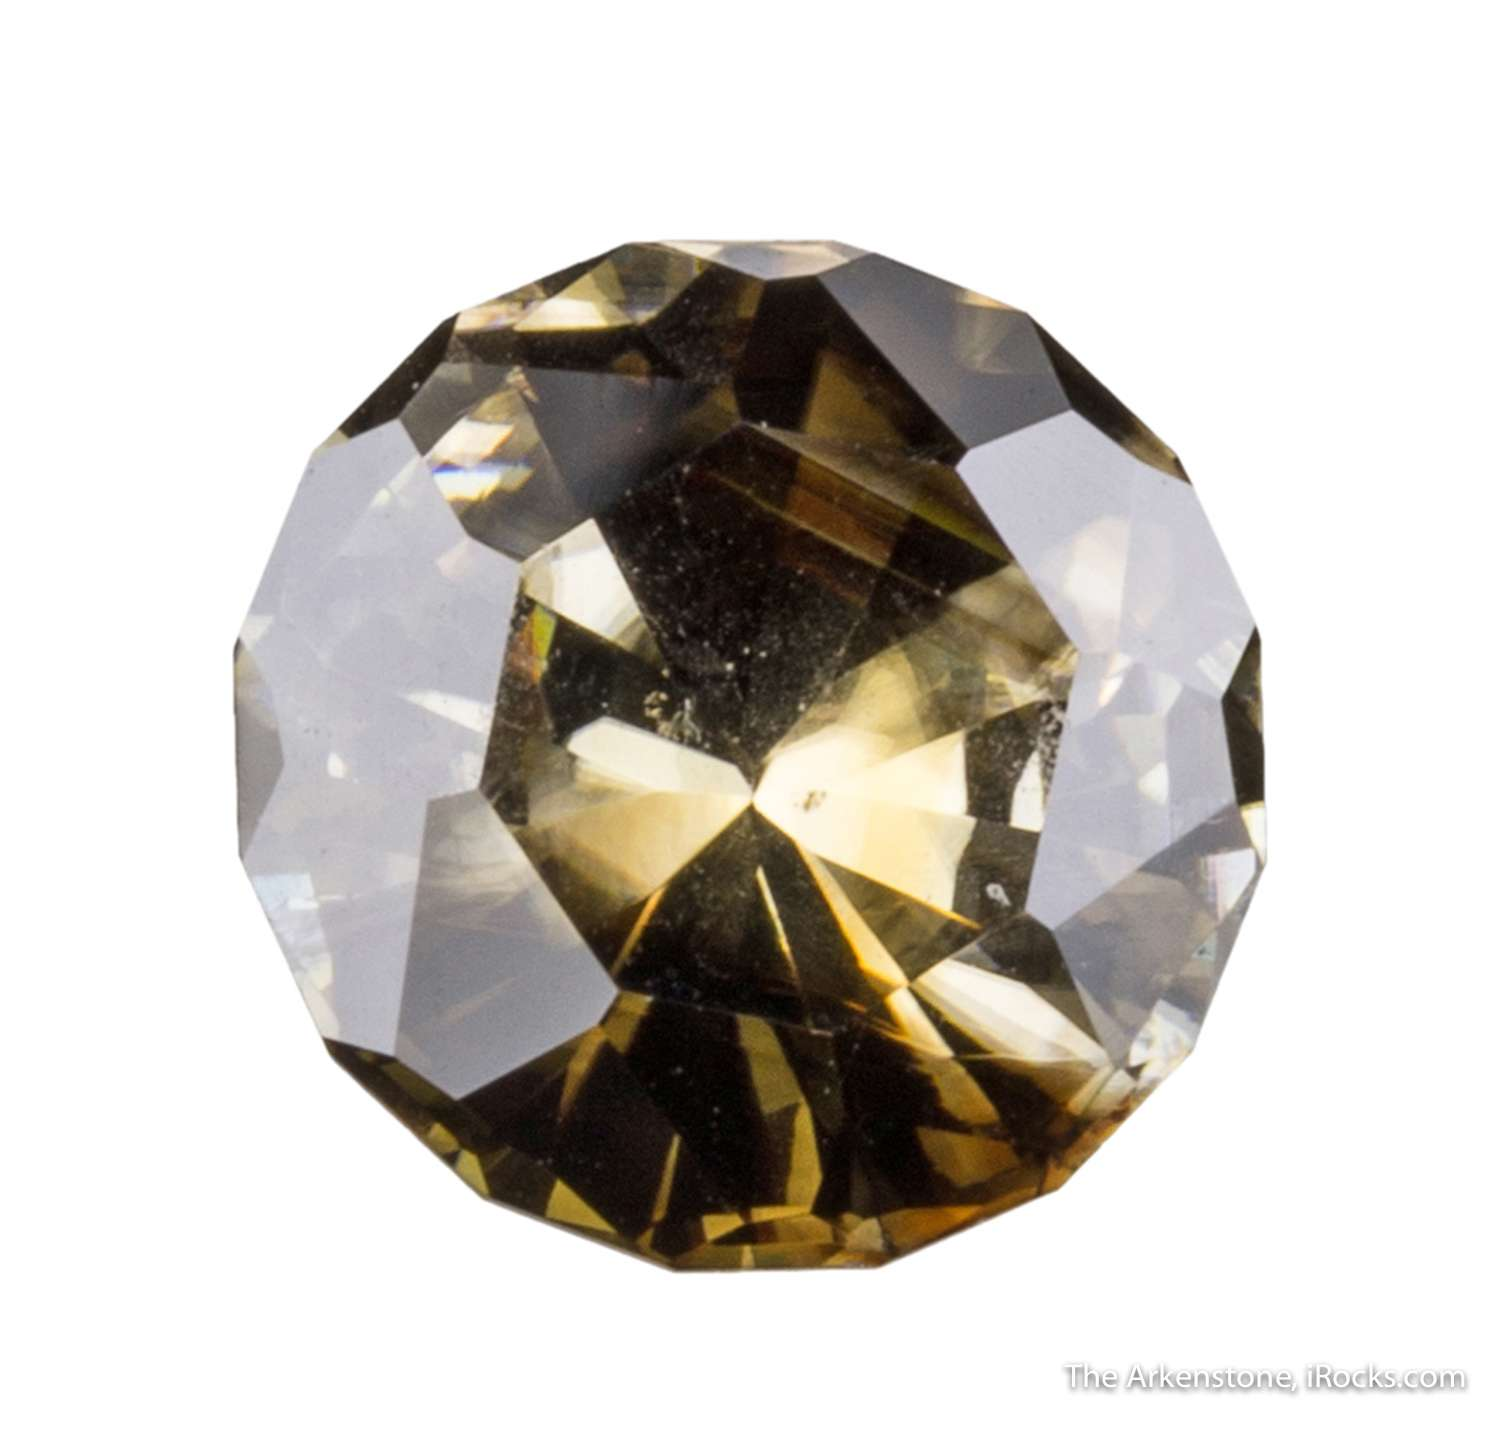 Rarely does cassiterite occur gemmy crystals crystal fragments faceted